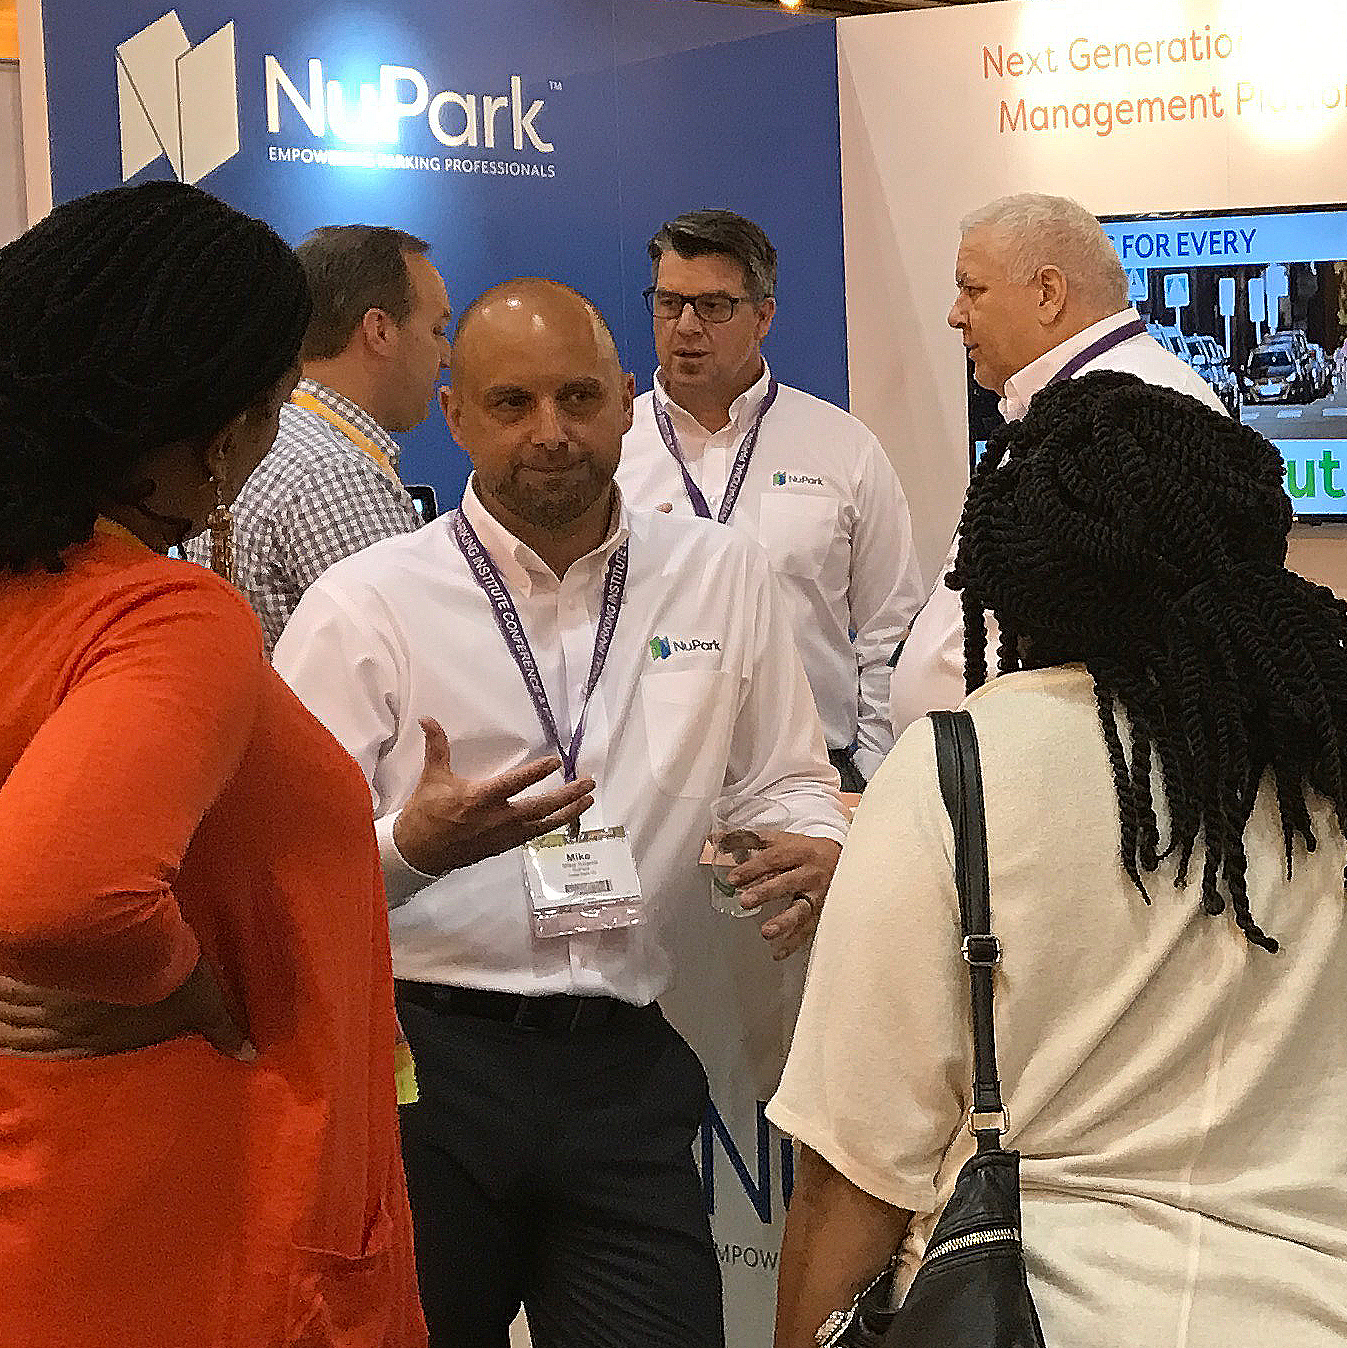 man in white shirt and black pants speaking to two ladies in white and orange clothes with men in the background talking with NuPark sign in the. back